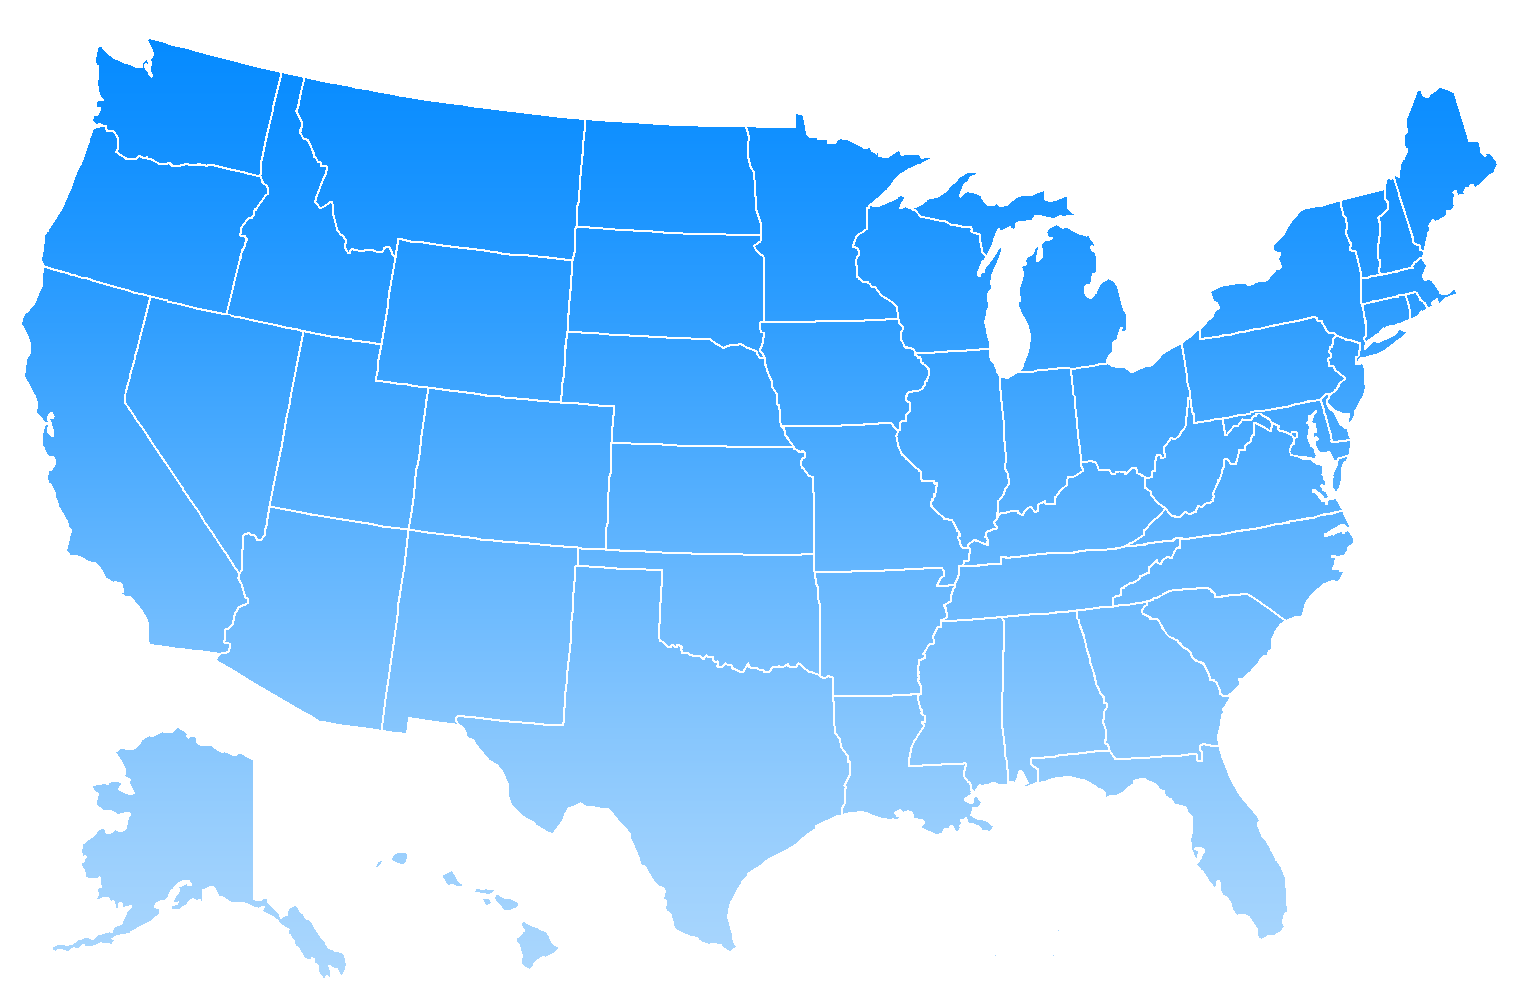 Clipart of united states svg free download Printable Blank Us Map With State Outlines - ClipArt Best svg free download